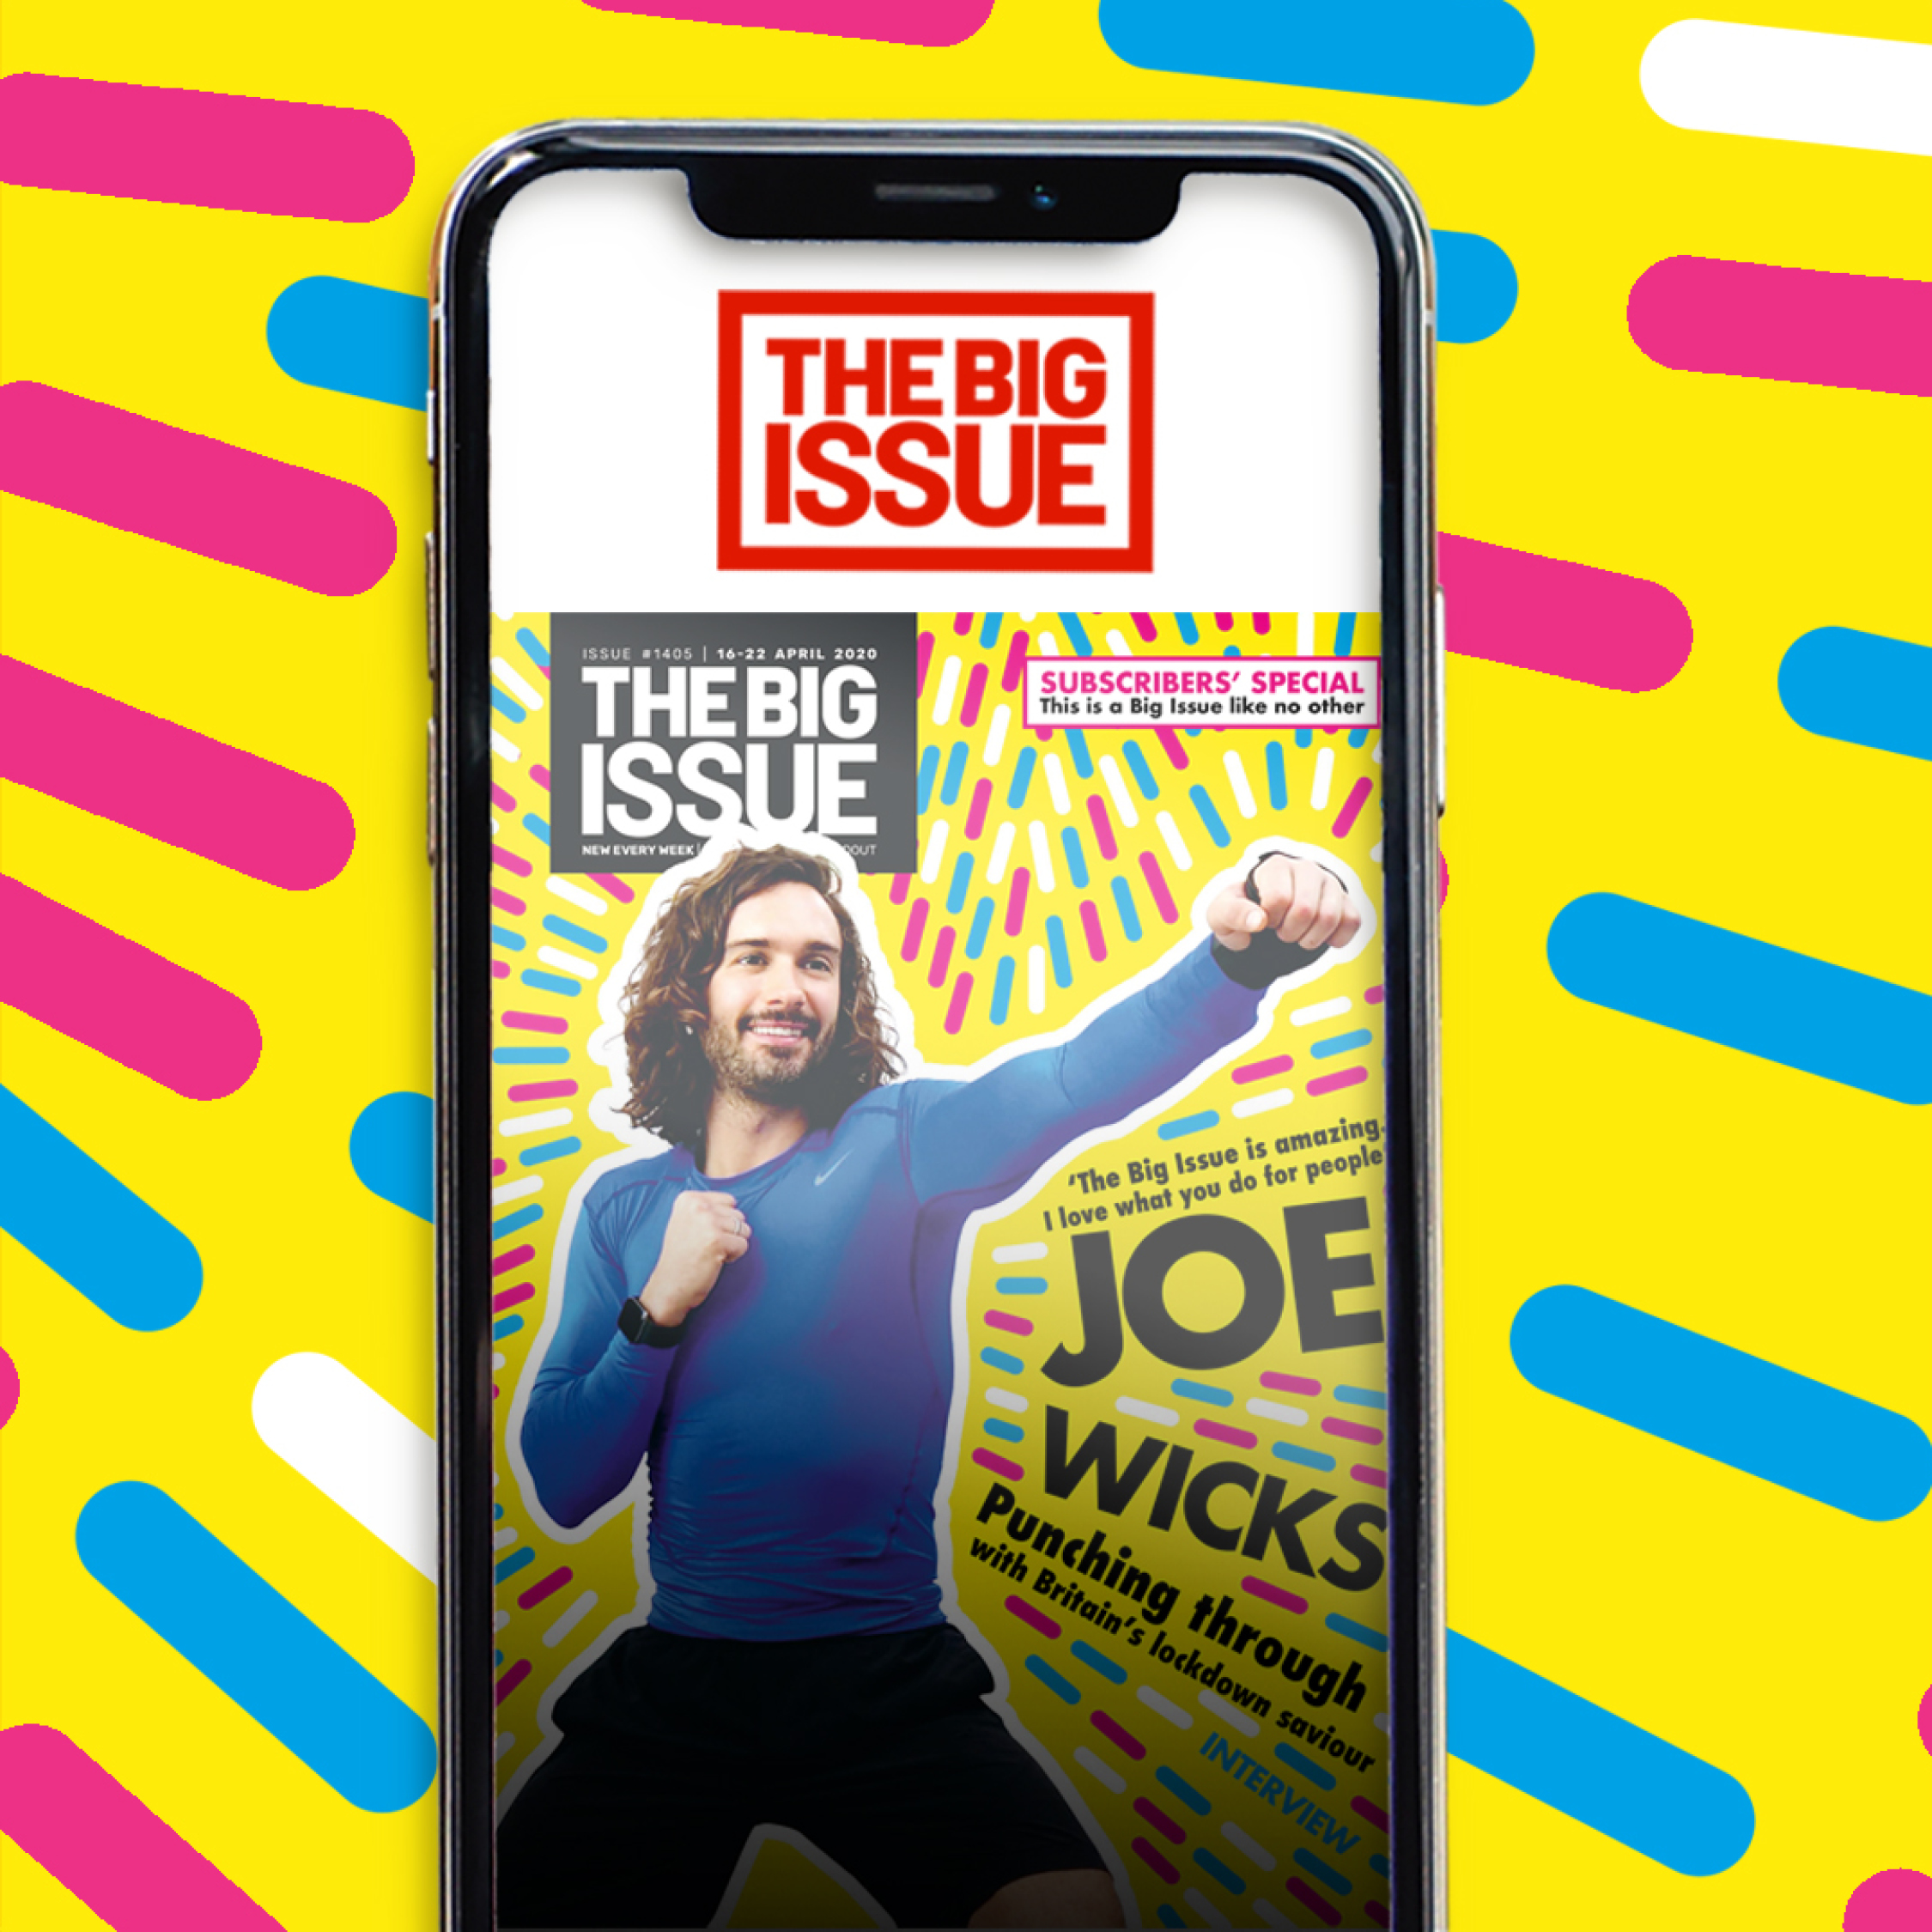 The Big Issue app